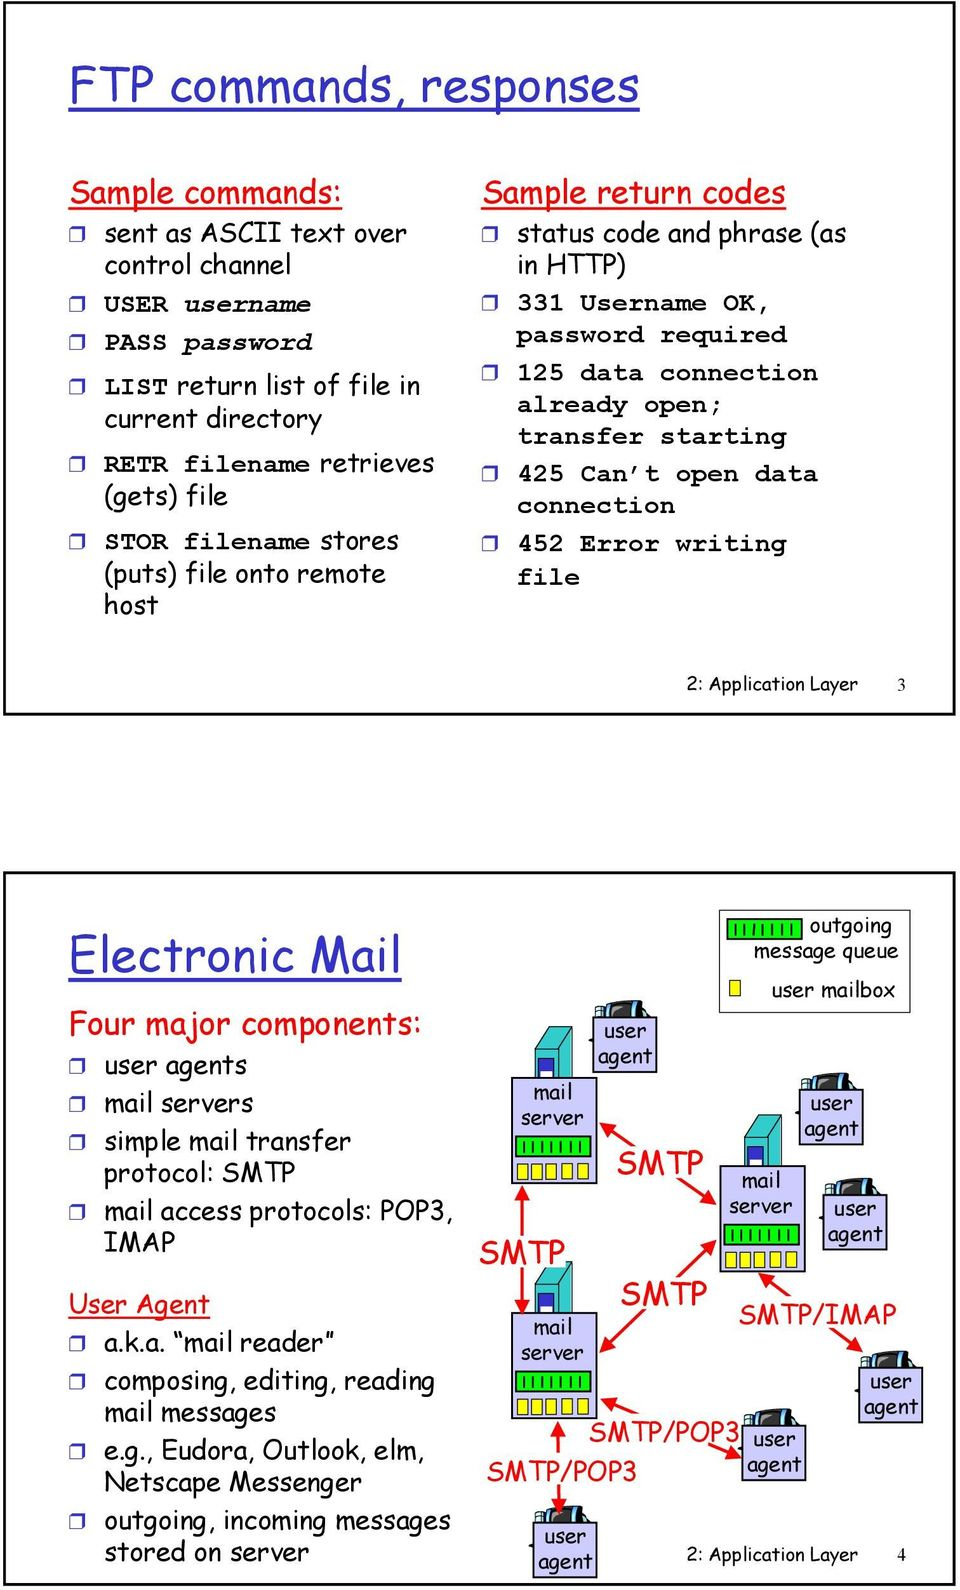 open data connection 452 Error writing file 2: Application Layer 3 Electronic Mail Four major components: s s simple transfer protocol: SMTP access protocols: POP3, IMAP User Agent a.k.a. reader composing, editing, reading messages e.